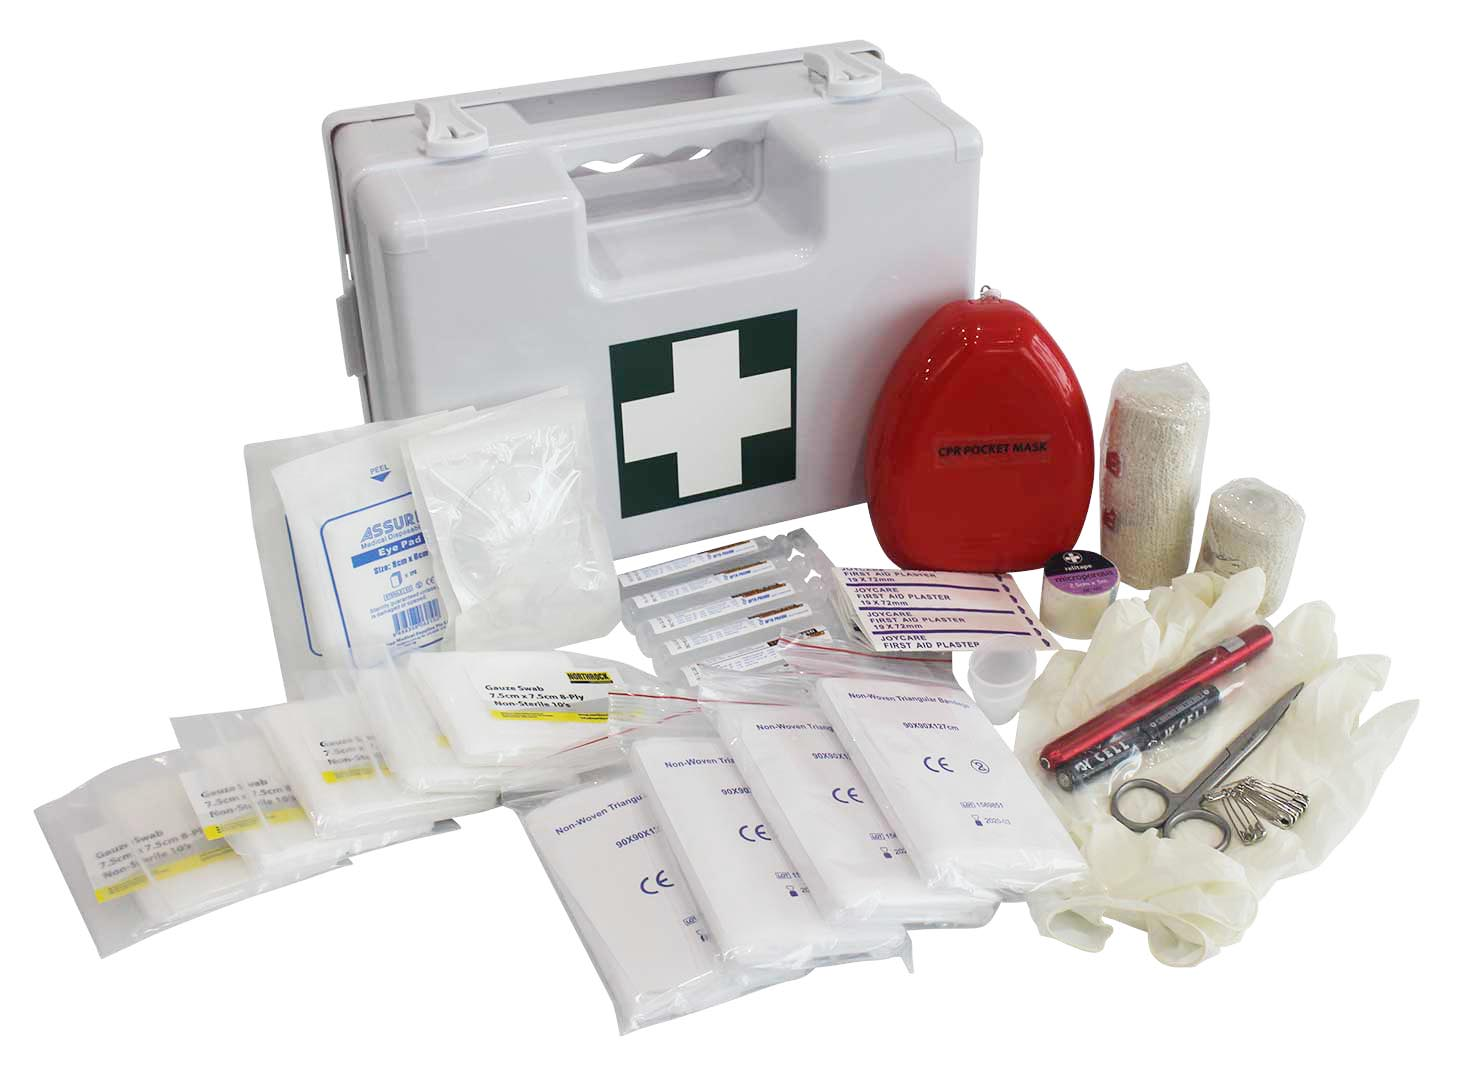 The material of the First Aid Kit